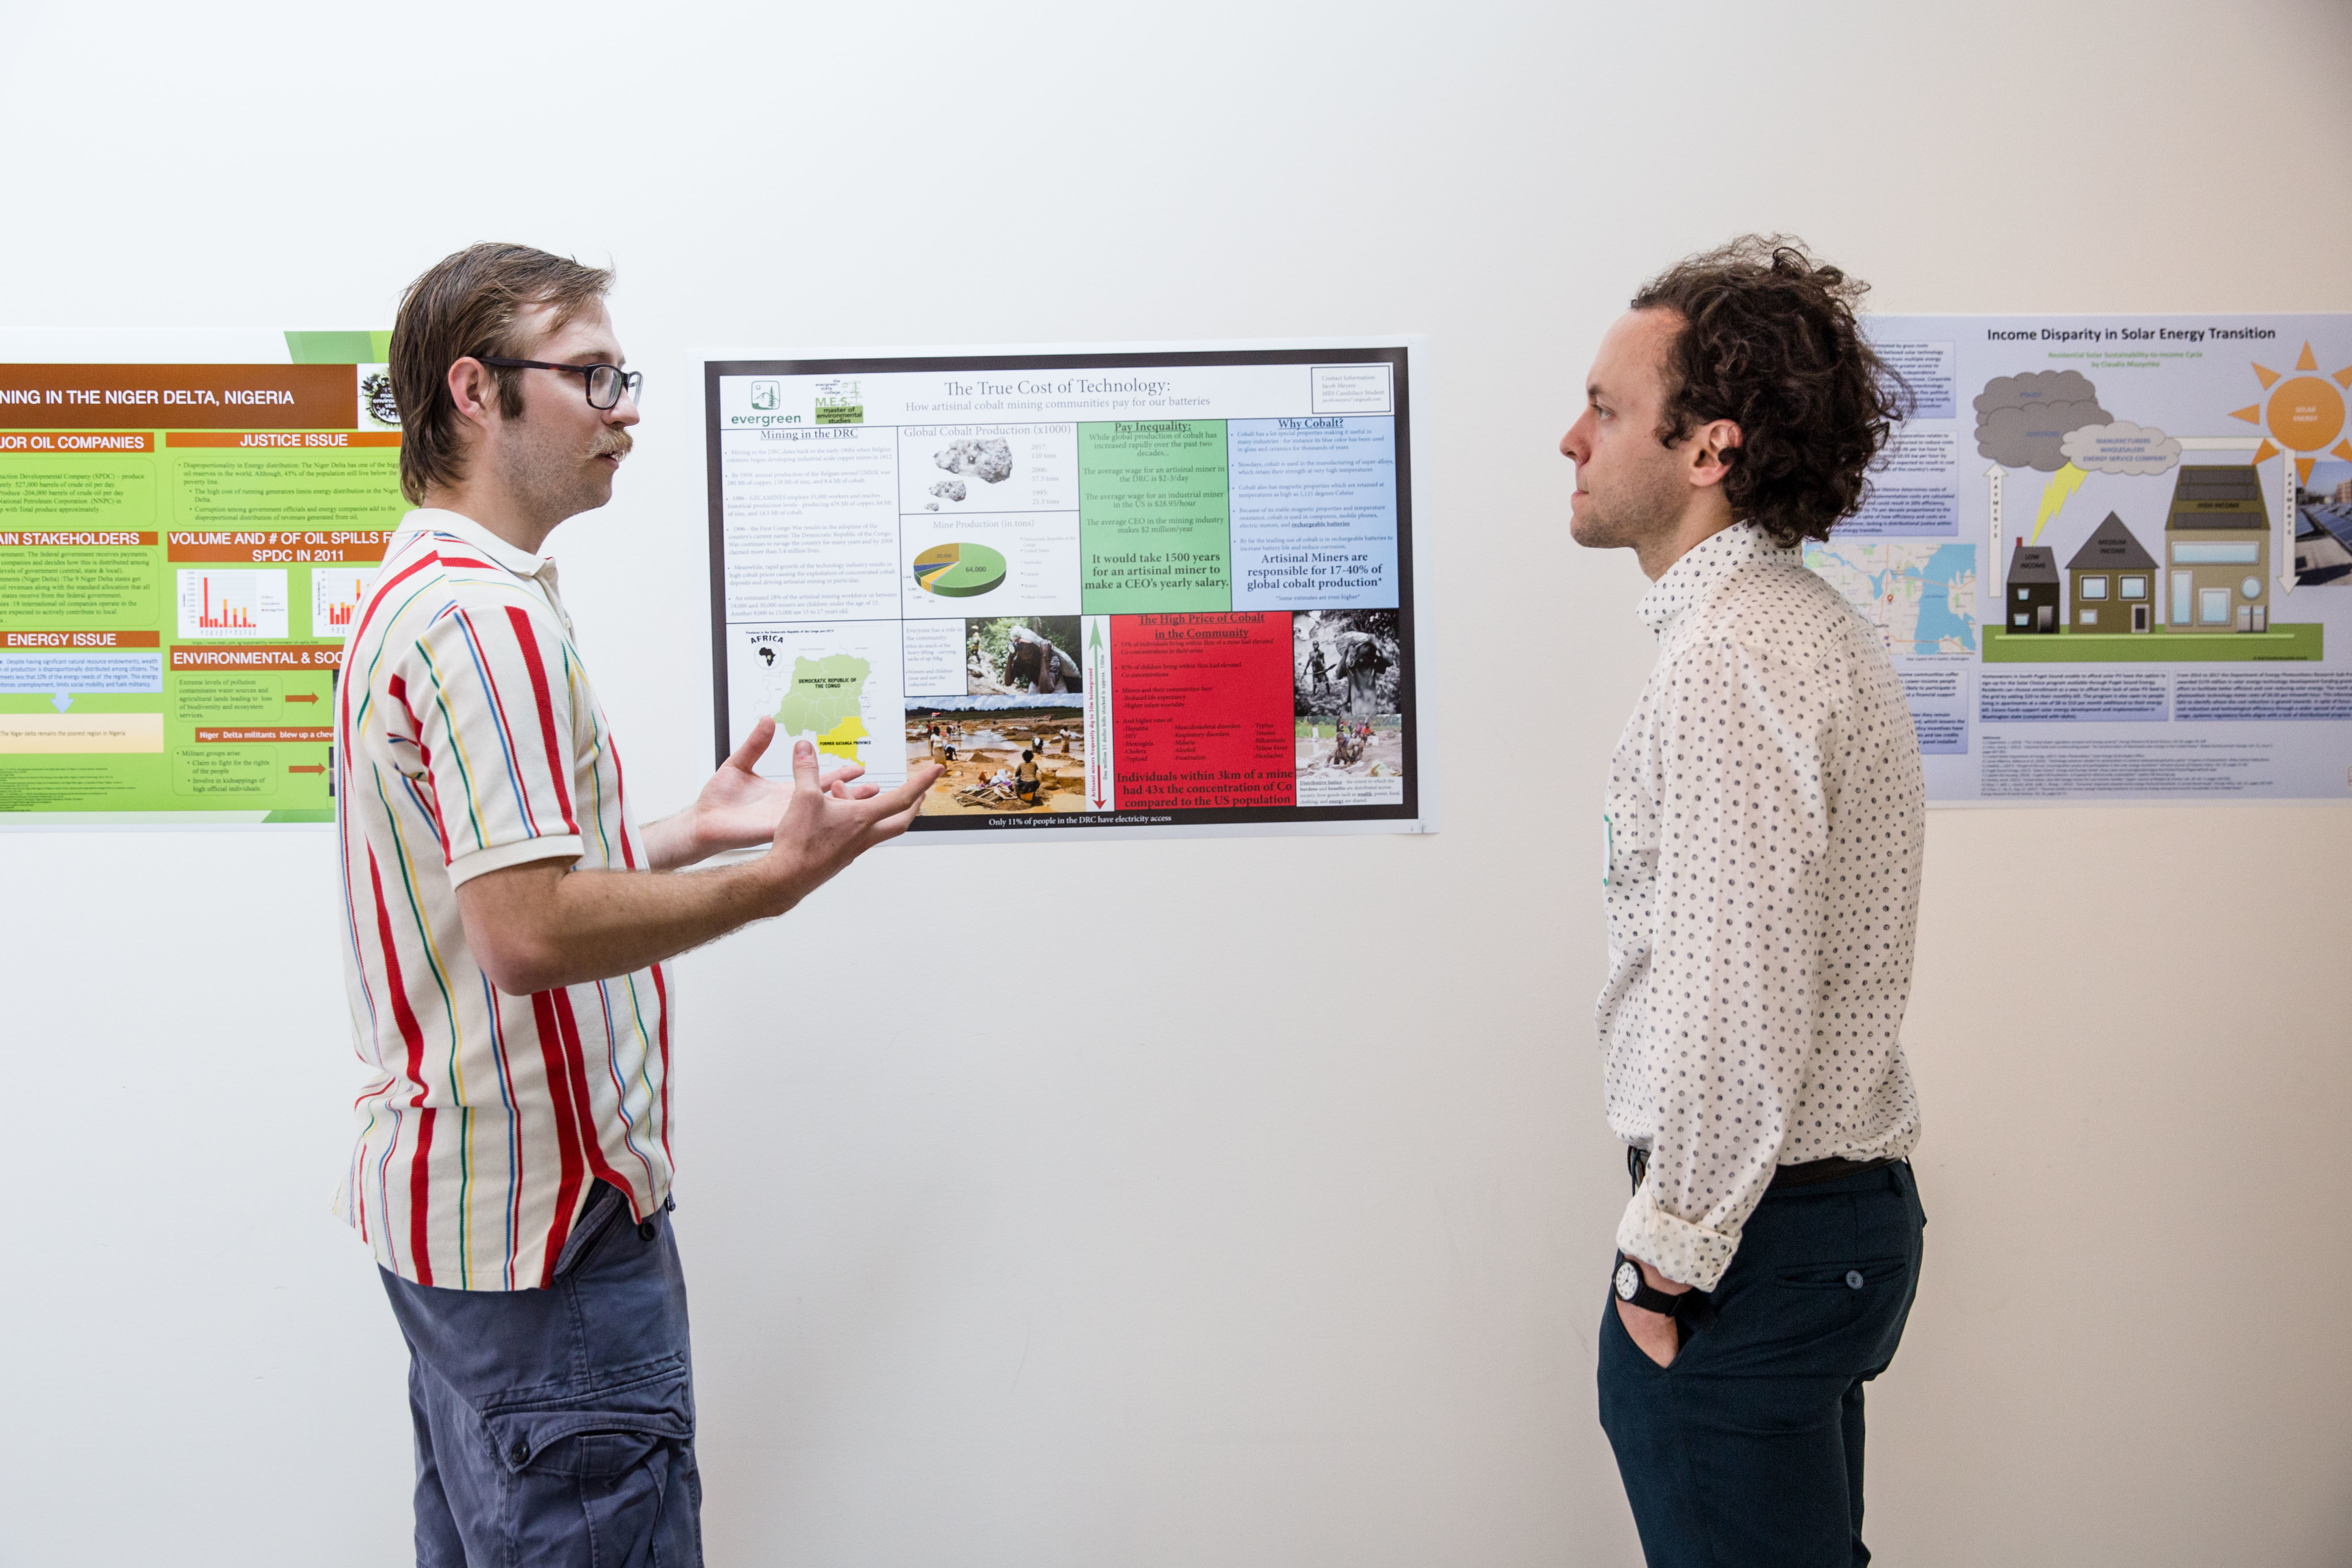 Two people discussing poster